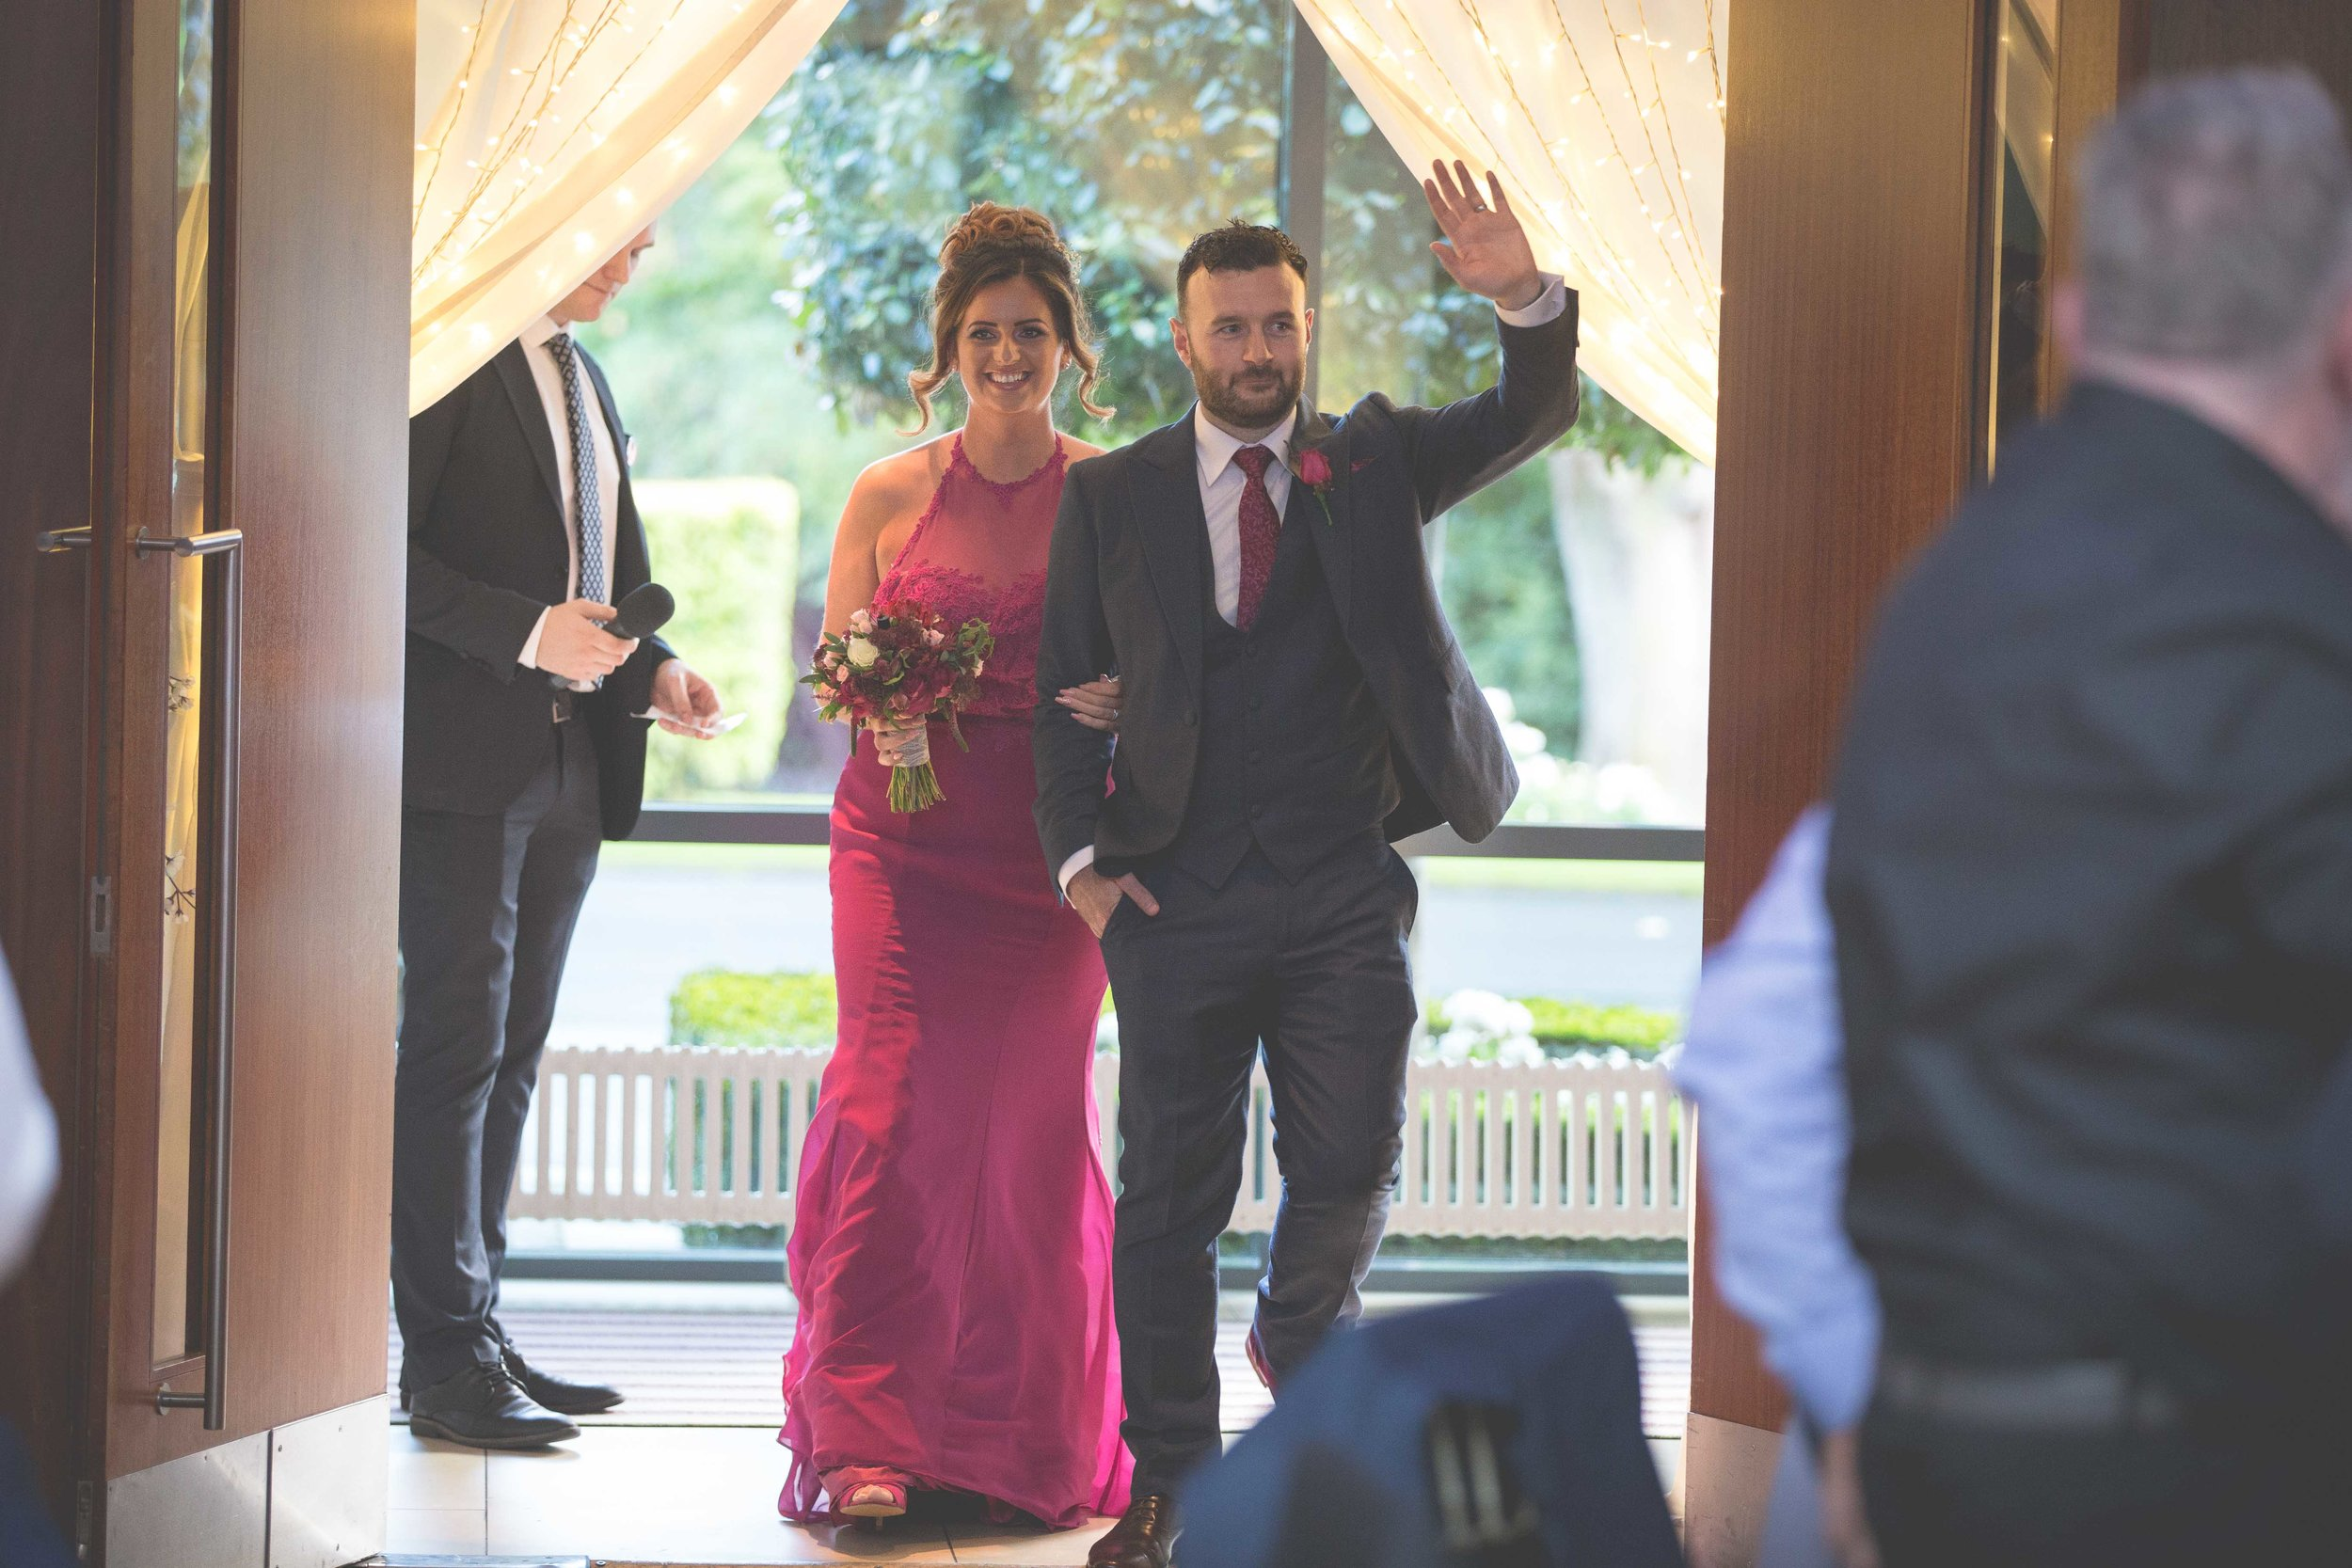 Aisling & Andy - Reception-64.jpg